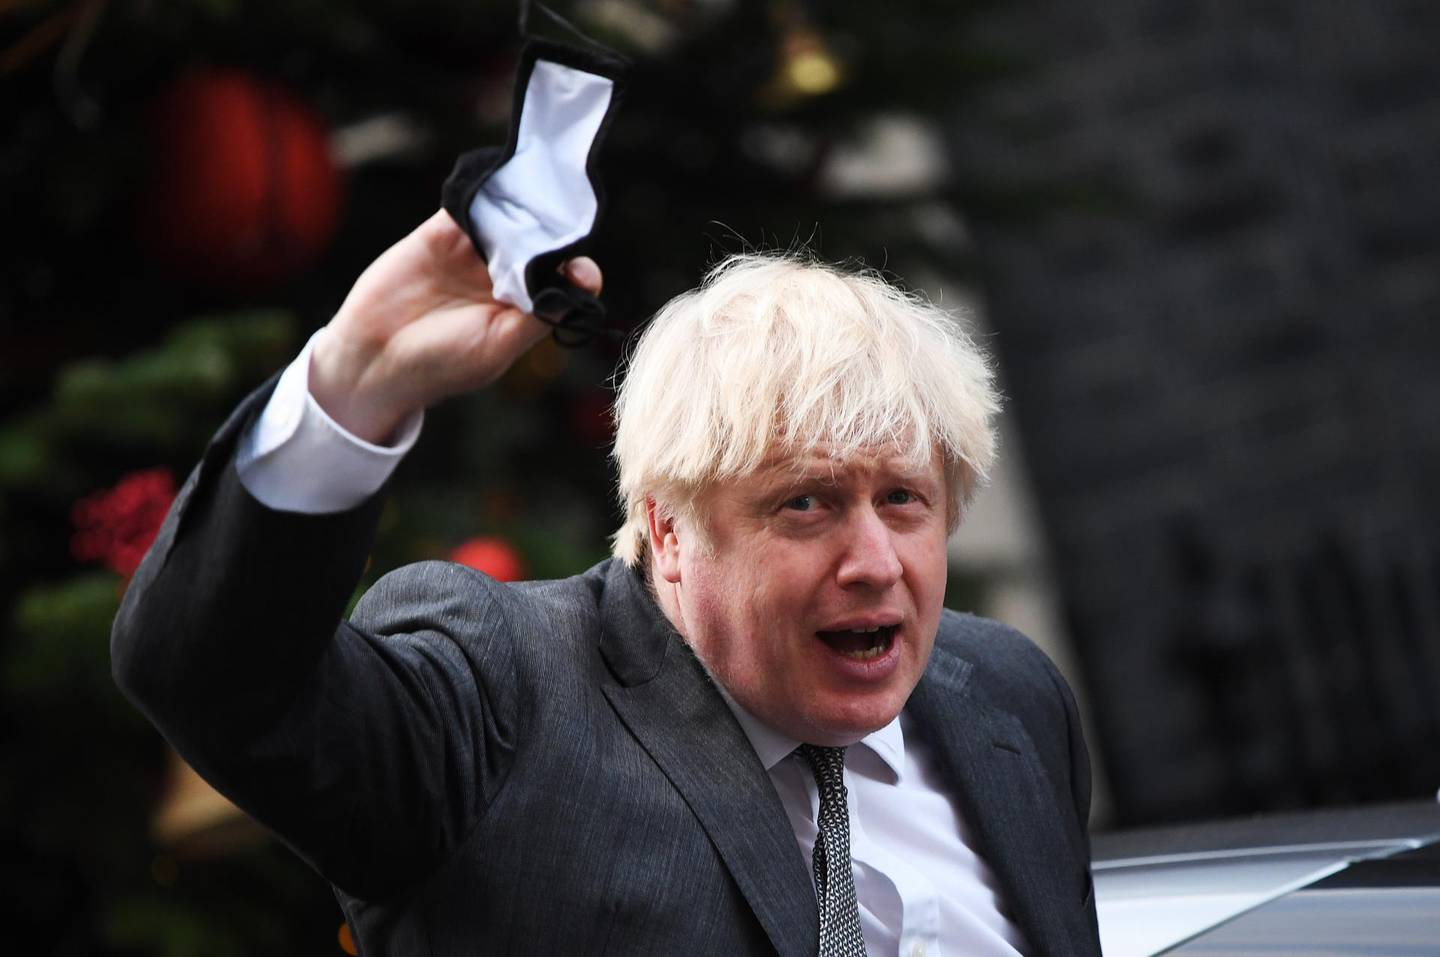 LONDON, ENGLAND - DECEMBER 30: Prime Minister Boris Johnson returns to No.10 Downing Street after MPs approved the EU-UK Brexit trade deal by 521 votes to 73 at its first stage in the House of Commons on December 30, 2020 in London, England. The United Kingdom and the European Union agreed a Trade and Cooperation Agreement, an Agreement on Nuclear Cooperation and an Agreement on Security Procedures for Exchanging and Protecting Classified Information on Christmas Eve 2020.  These Agreements change the basis of the UK's relationship with the EU from EU law to free trade and friendly cooperation. In a referendum of 23 June 2016 the British people voted to take back control of their laws, borders, money, trade and fisheries, commonly referred to as Brexit. (Photo by Chris J Ratcliffe/Getty Images)